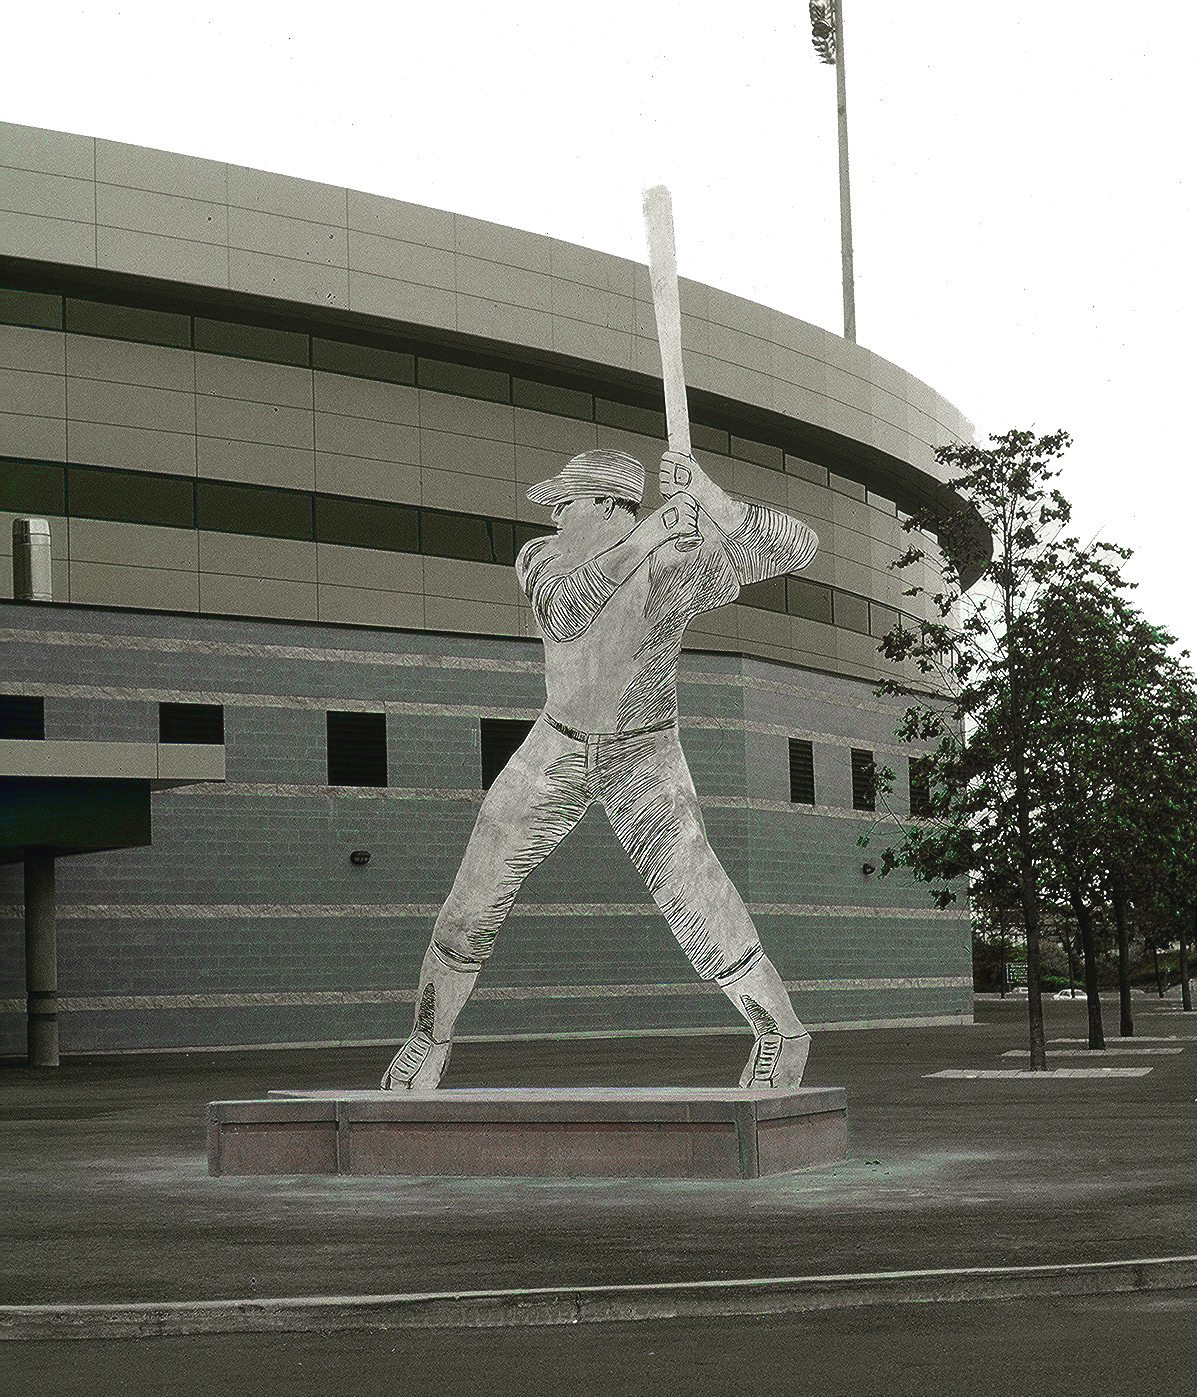 Switch Hitter, a 22-foot-high baseball player, bat raised and awaiting the pitch, is in front of the Raymond Chabot Grant Thornton stadium